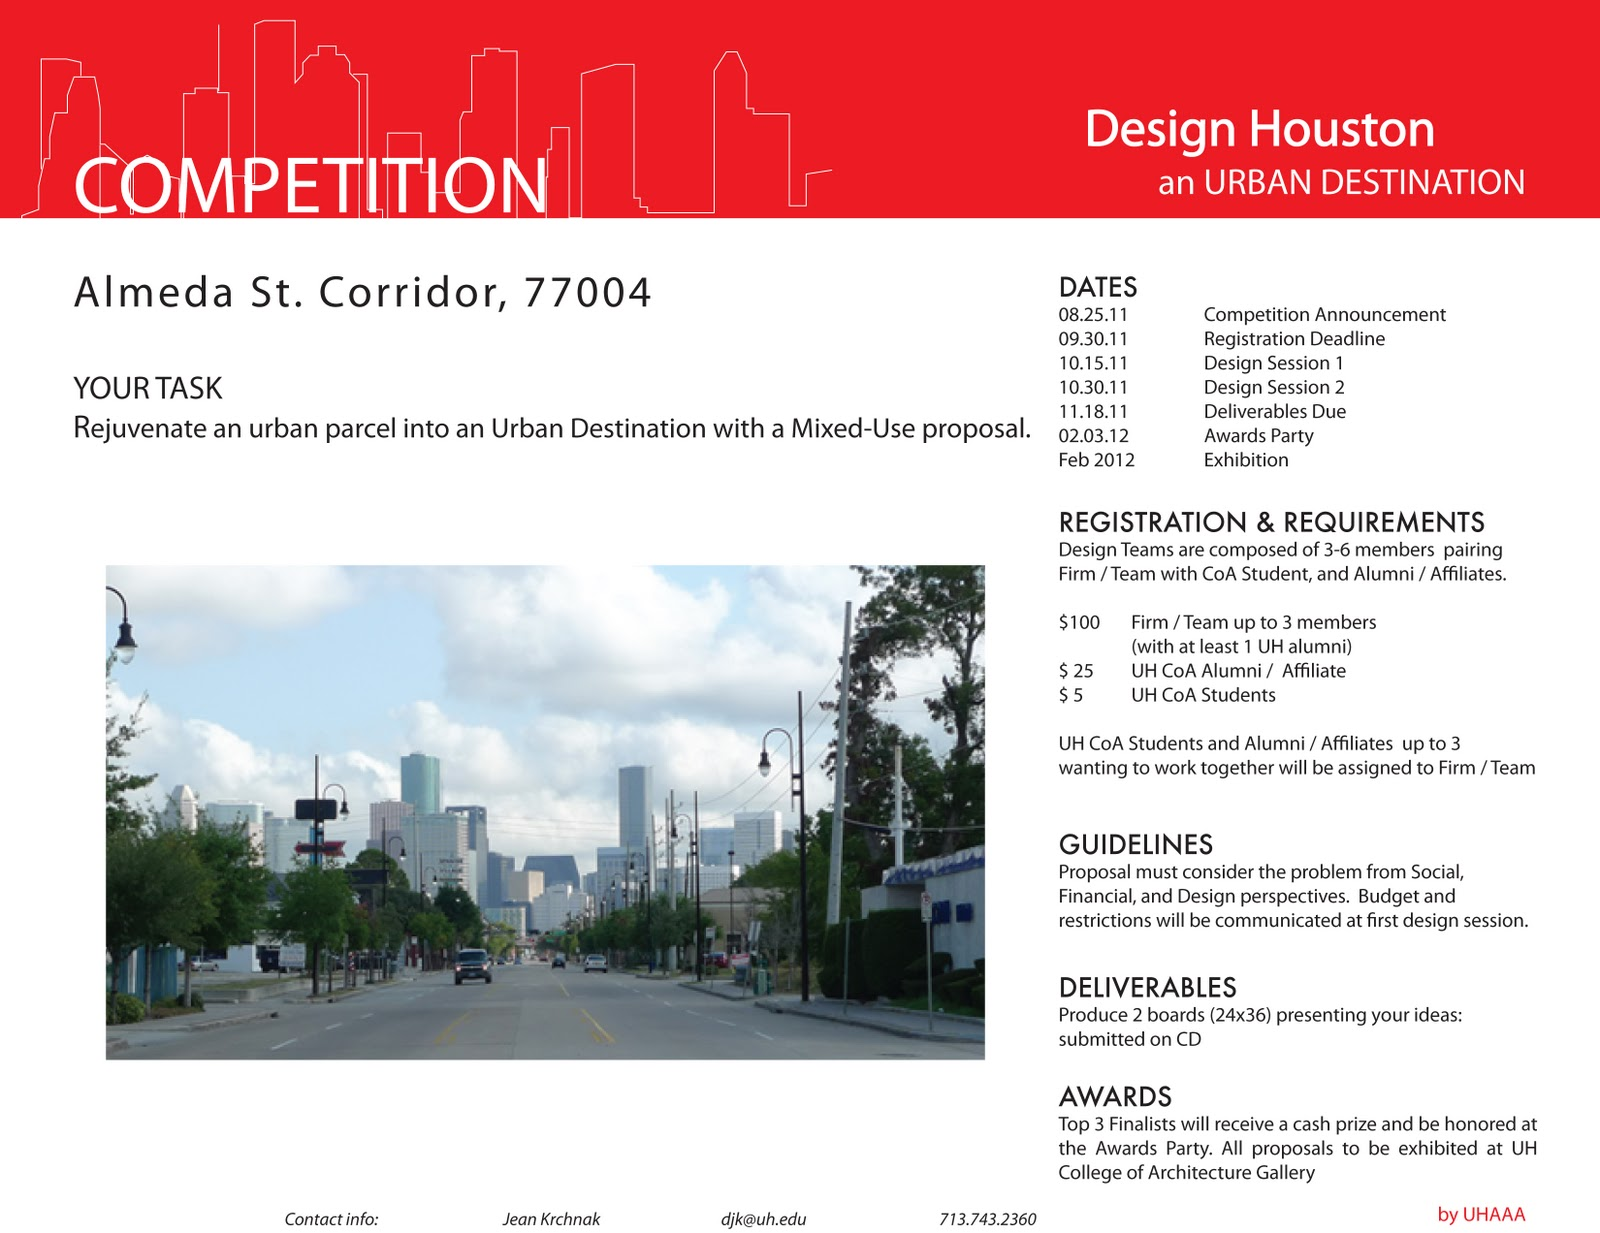 design competition sponsored by the UH Architecture Alumni